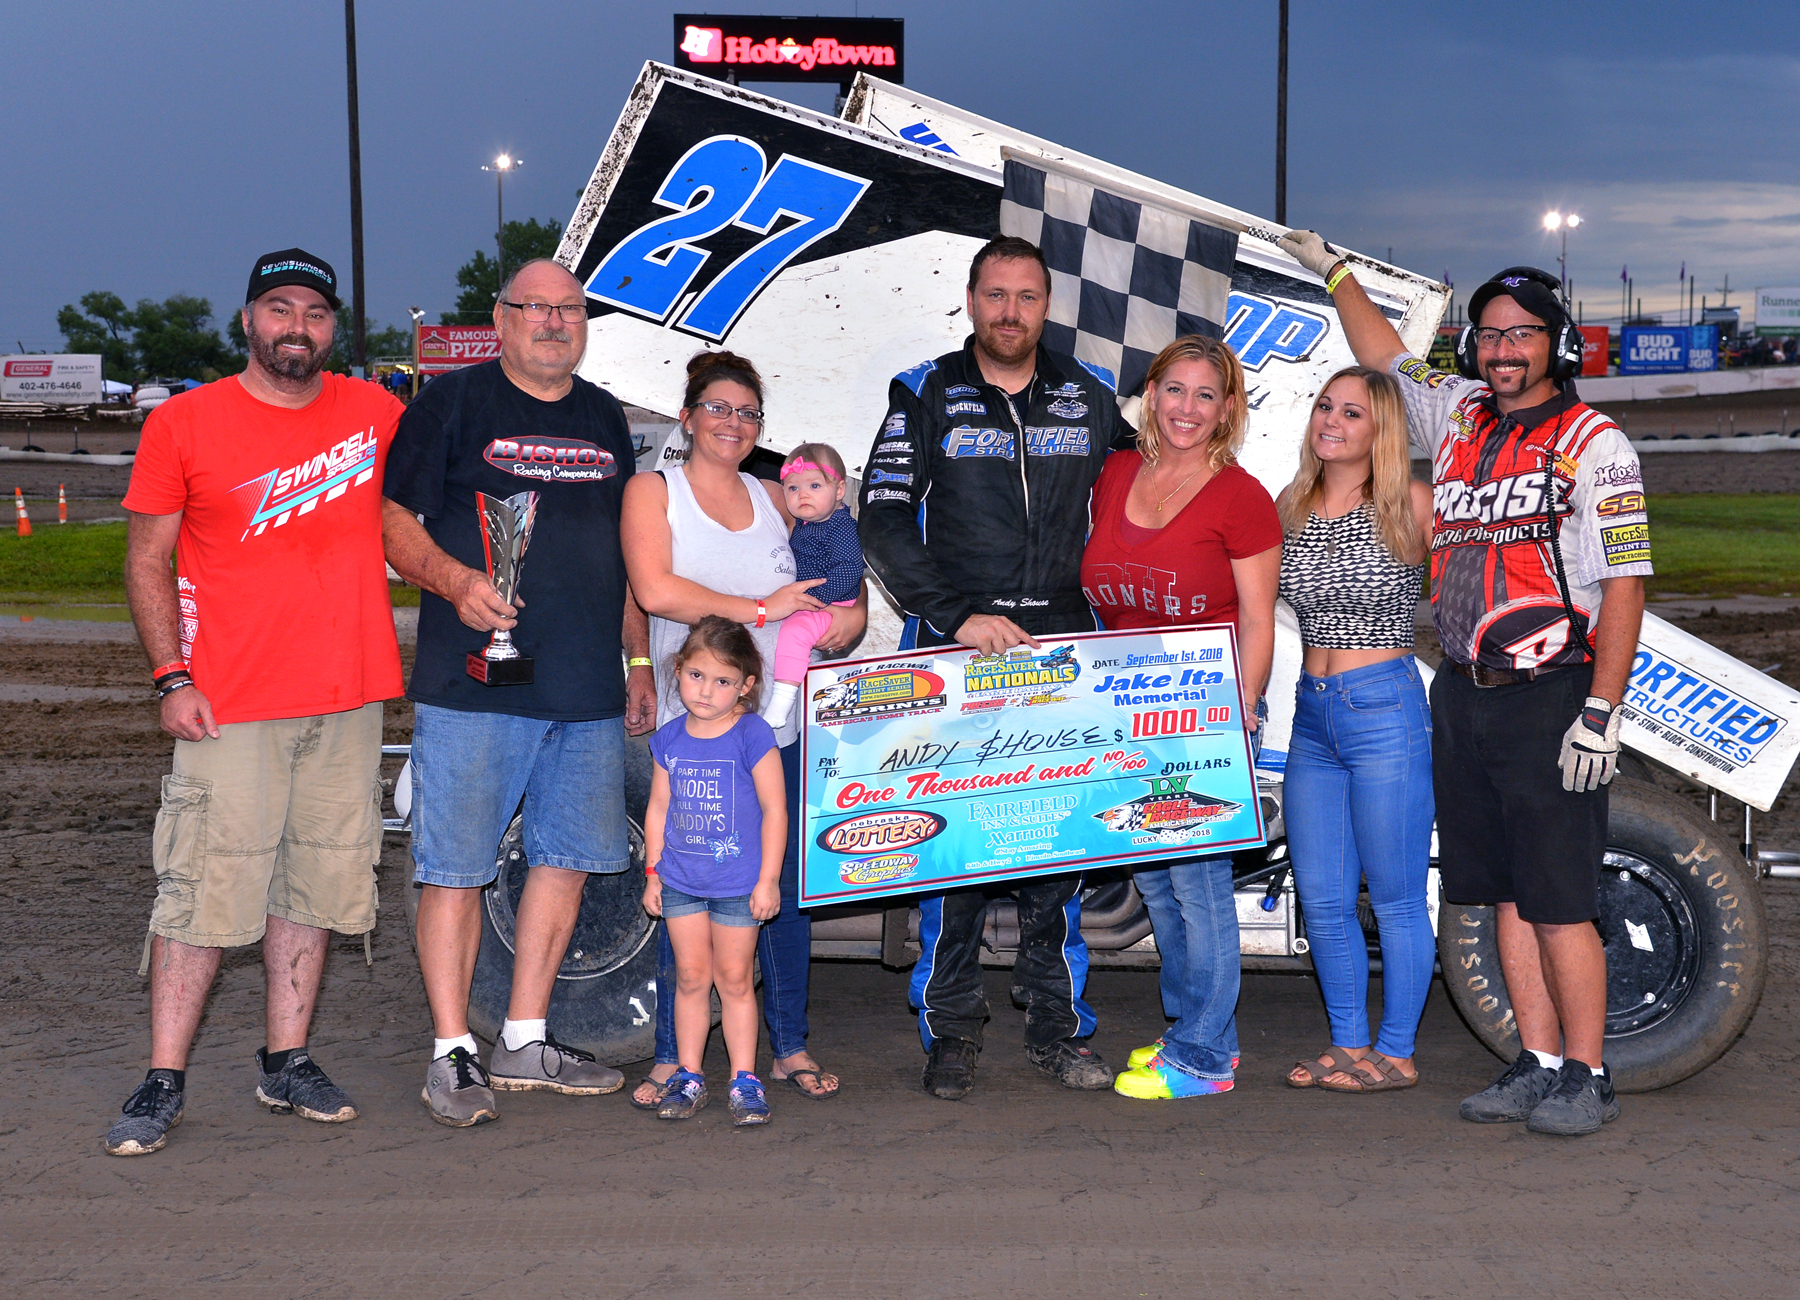 Andy Shouse conquers the 2018 Jake Ita Memorial Race of Champions